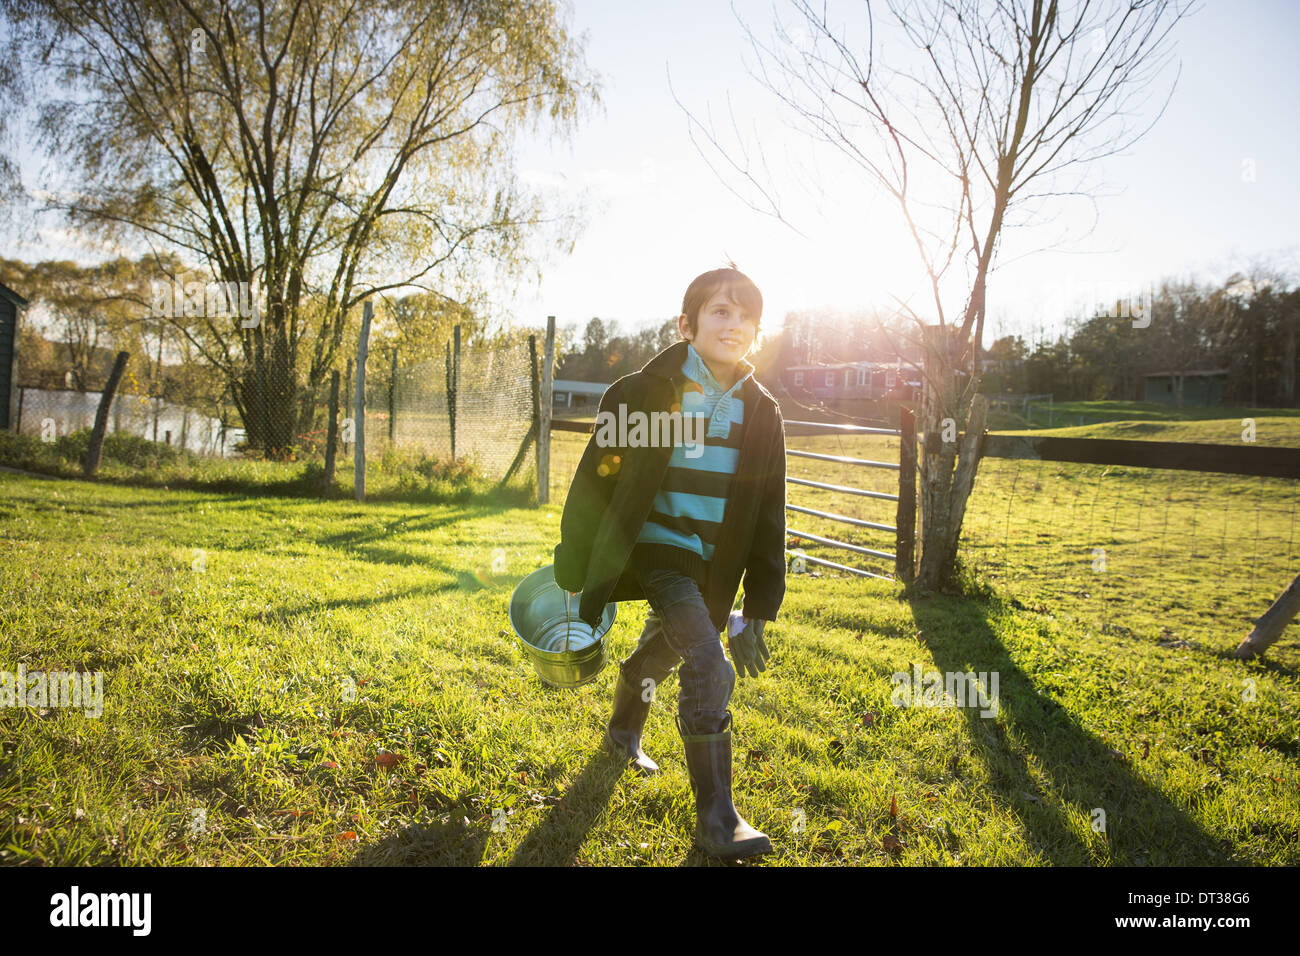 A young boy in an animal paddock, holding a bucket of feed. Animal sanctuary. - Stock Image